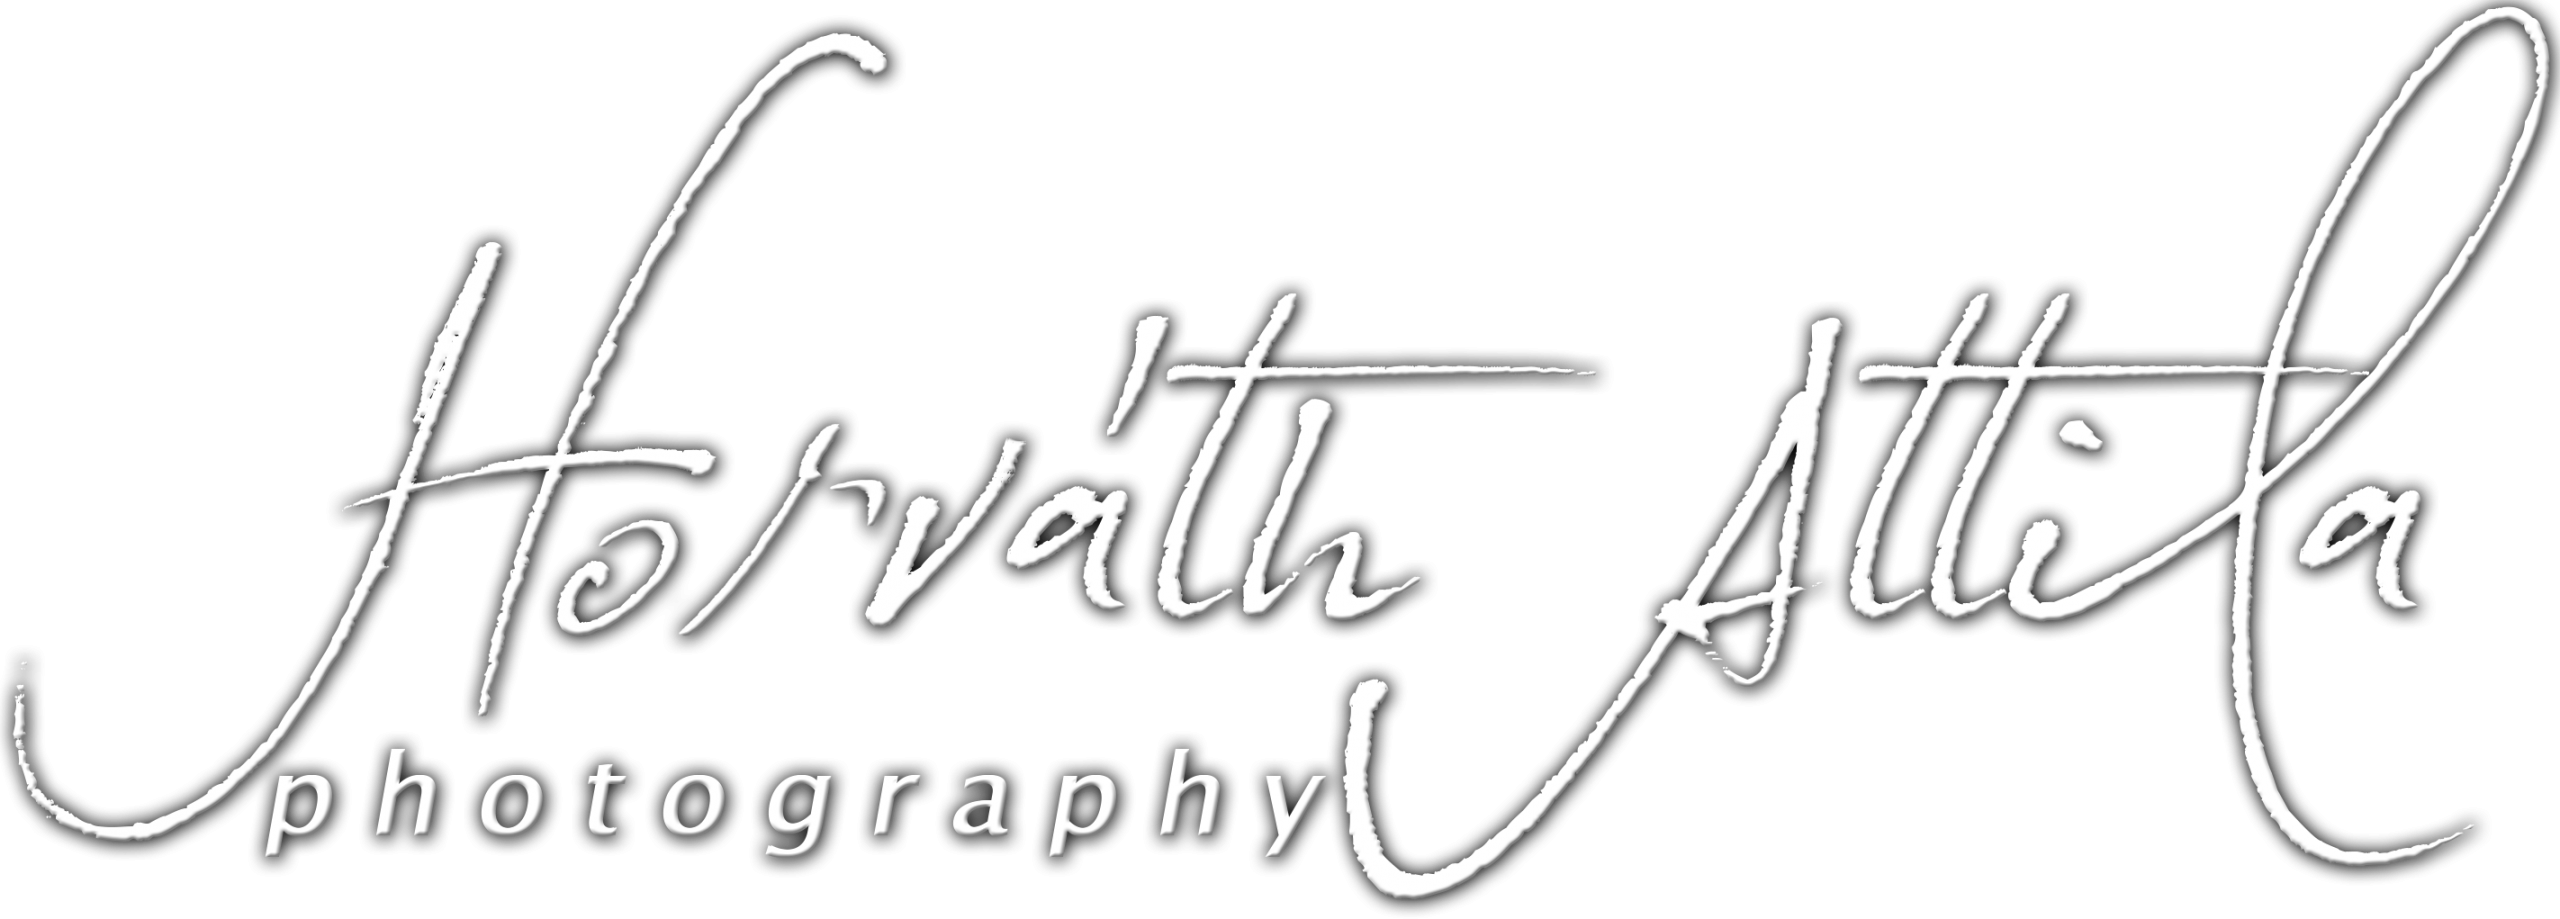 Horvath Attila Photography